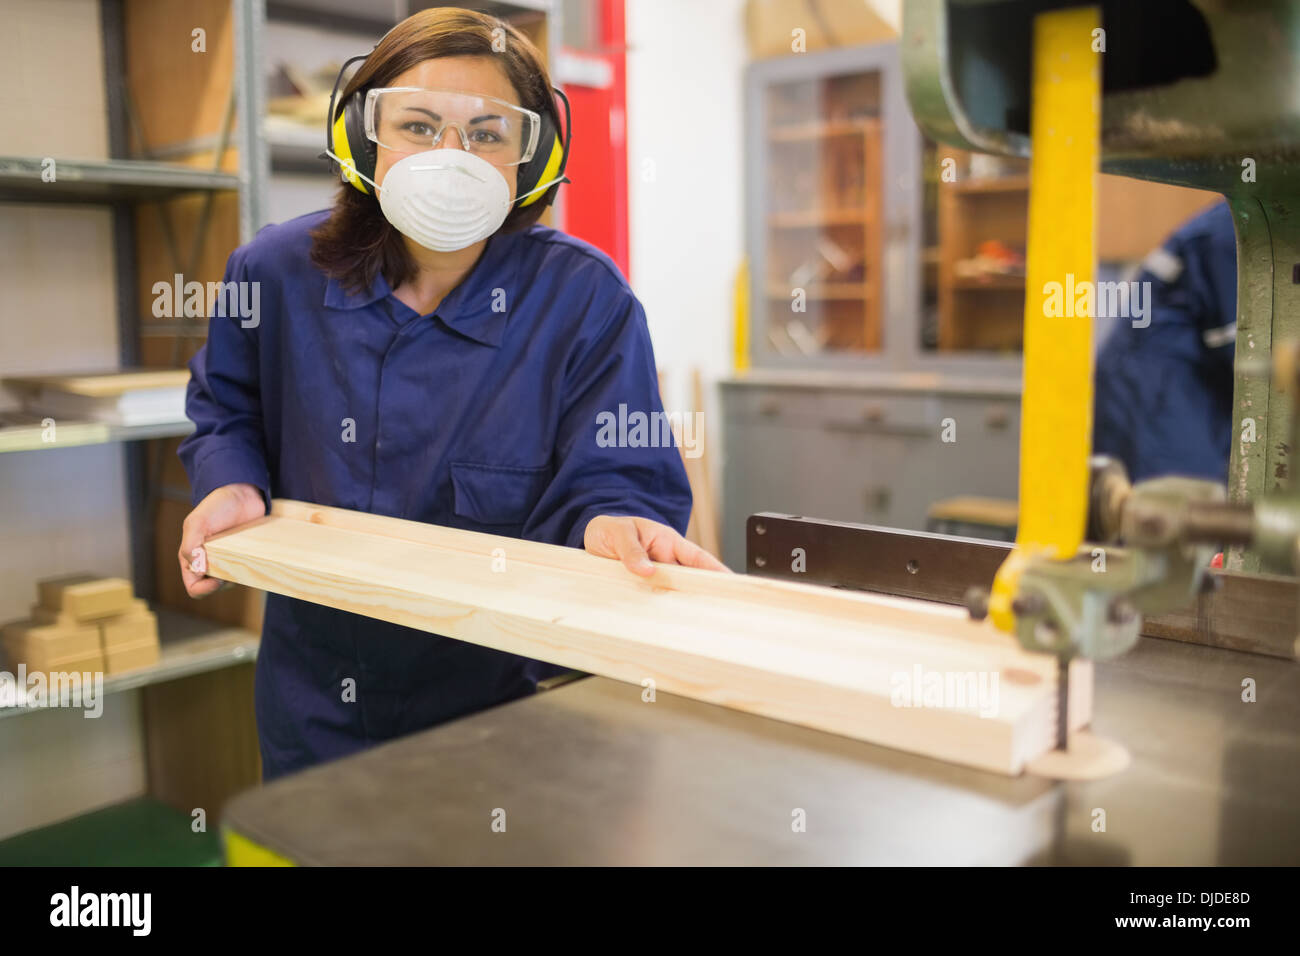 Apprentice wearing safety protection using saw - Stock Image